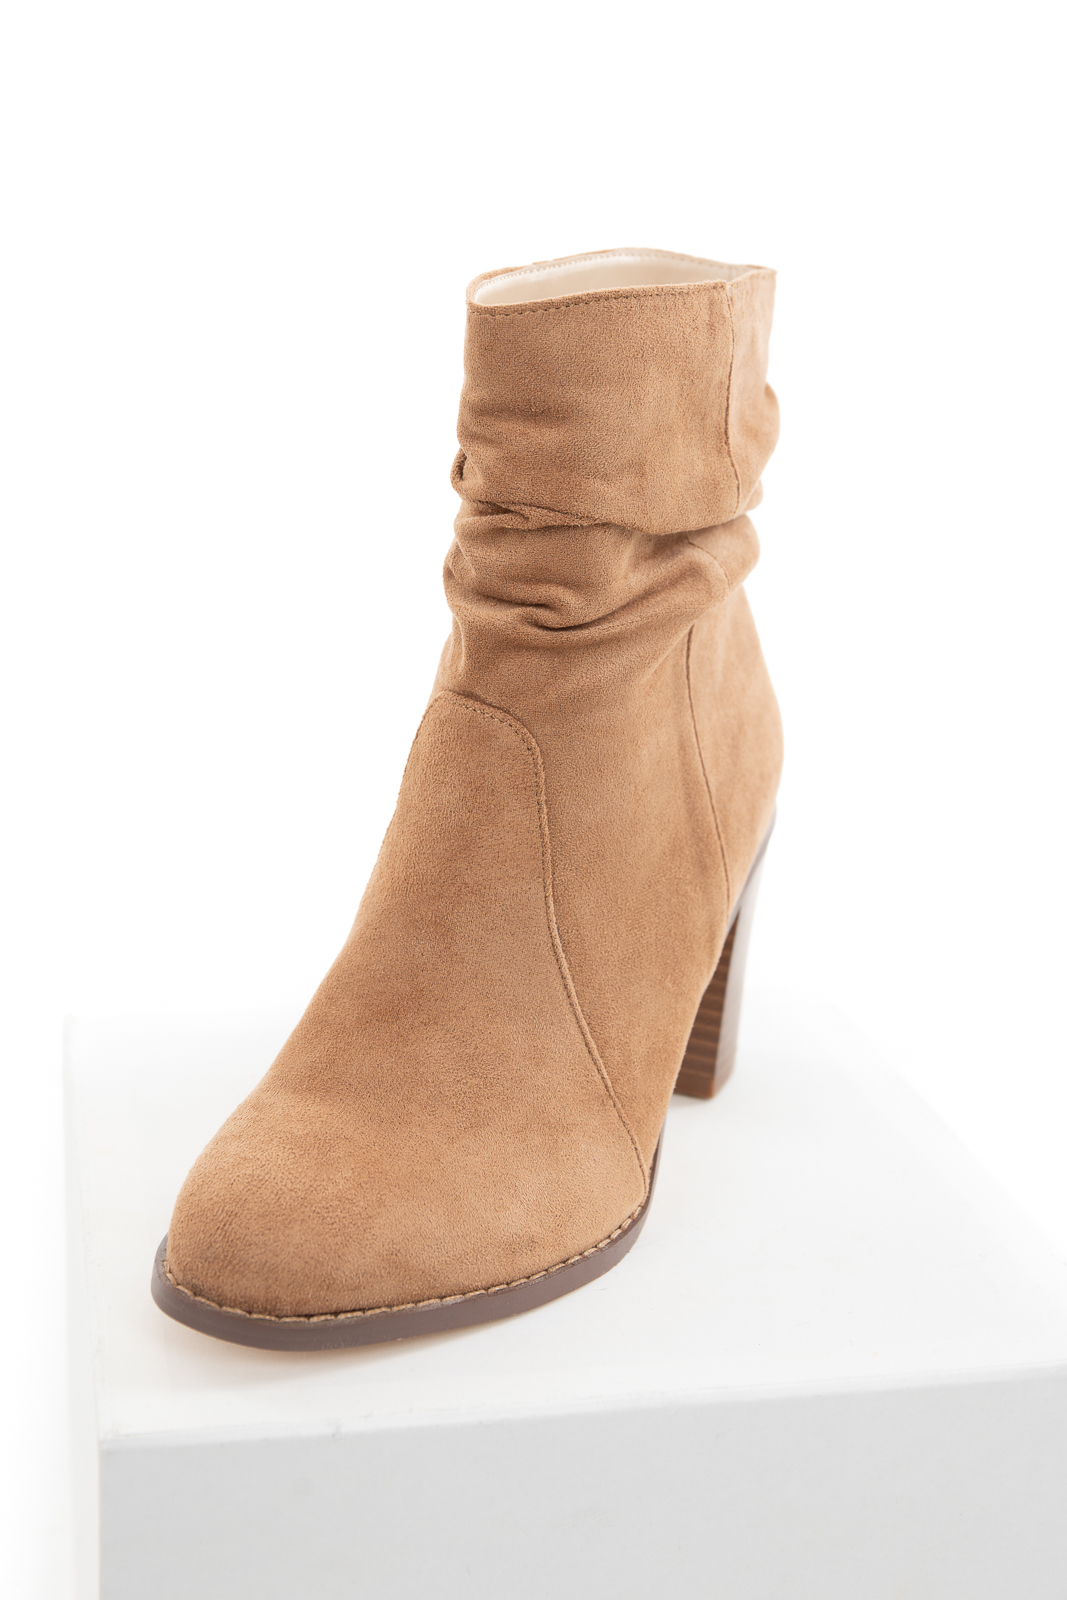 Camel Faux Suede High Heel Bootie with Gathered Detail